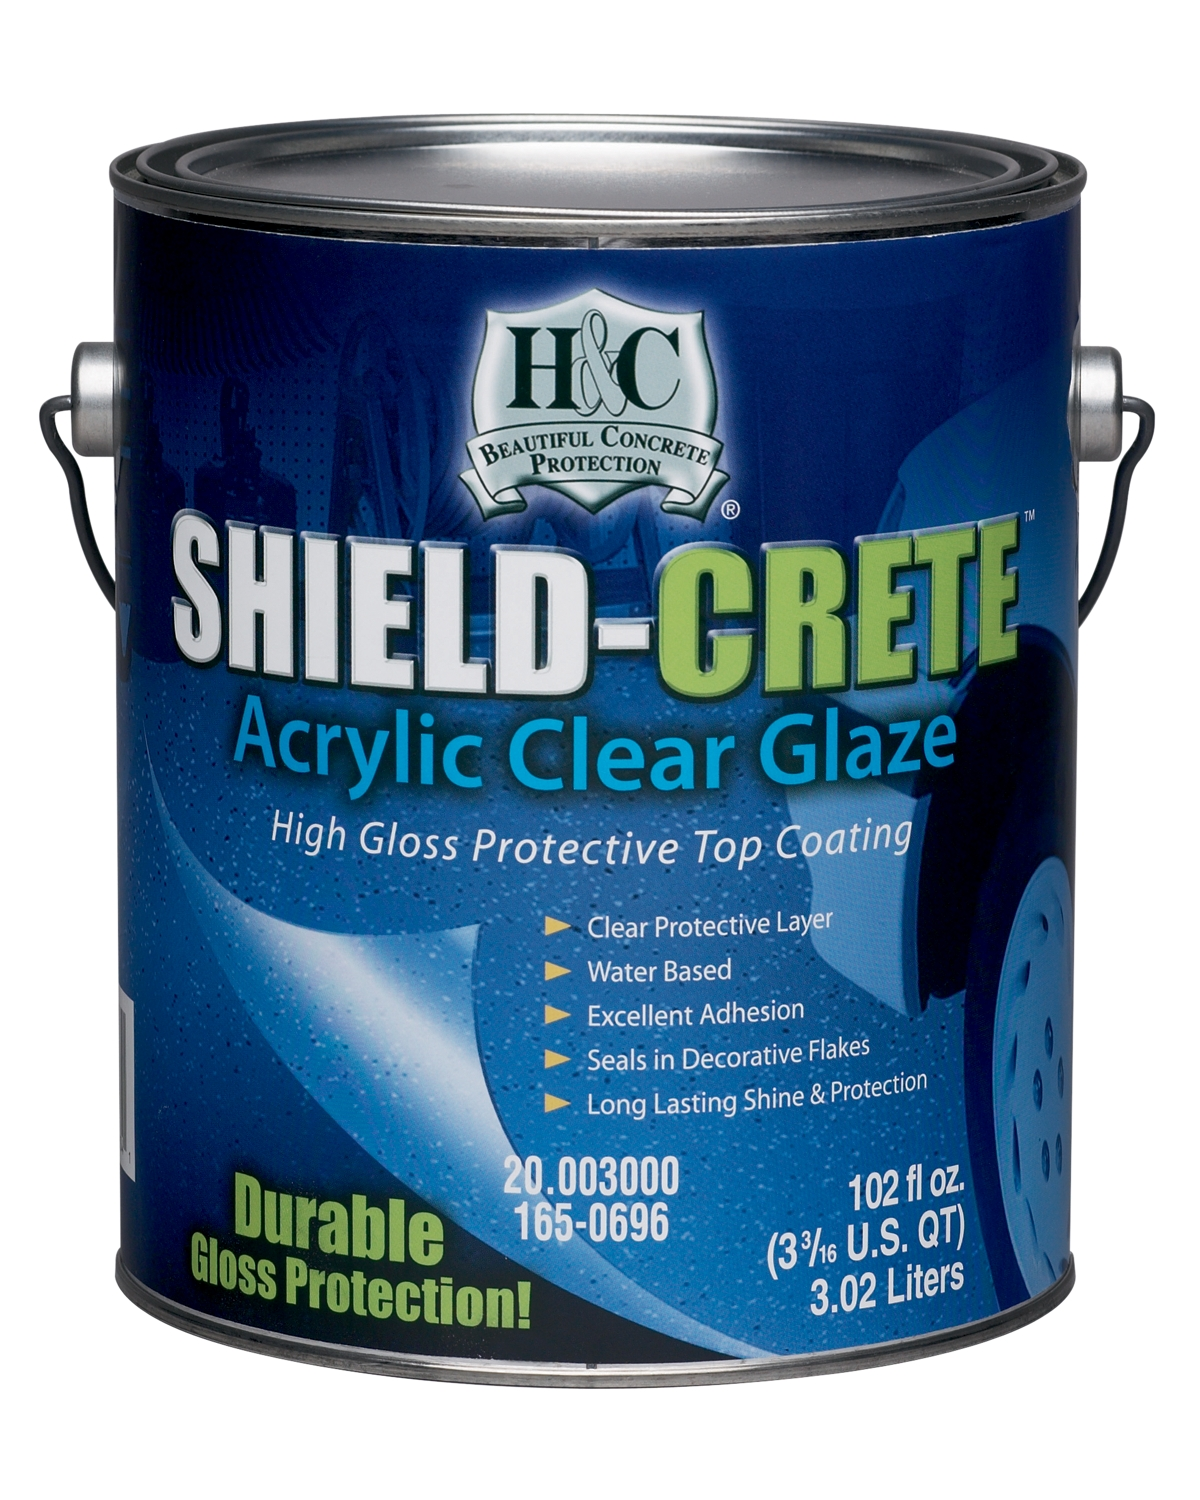 H&C® Shield-Crete® Acrylic Clear Glaze